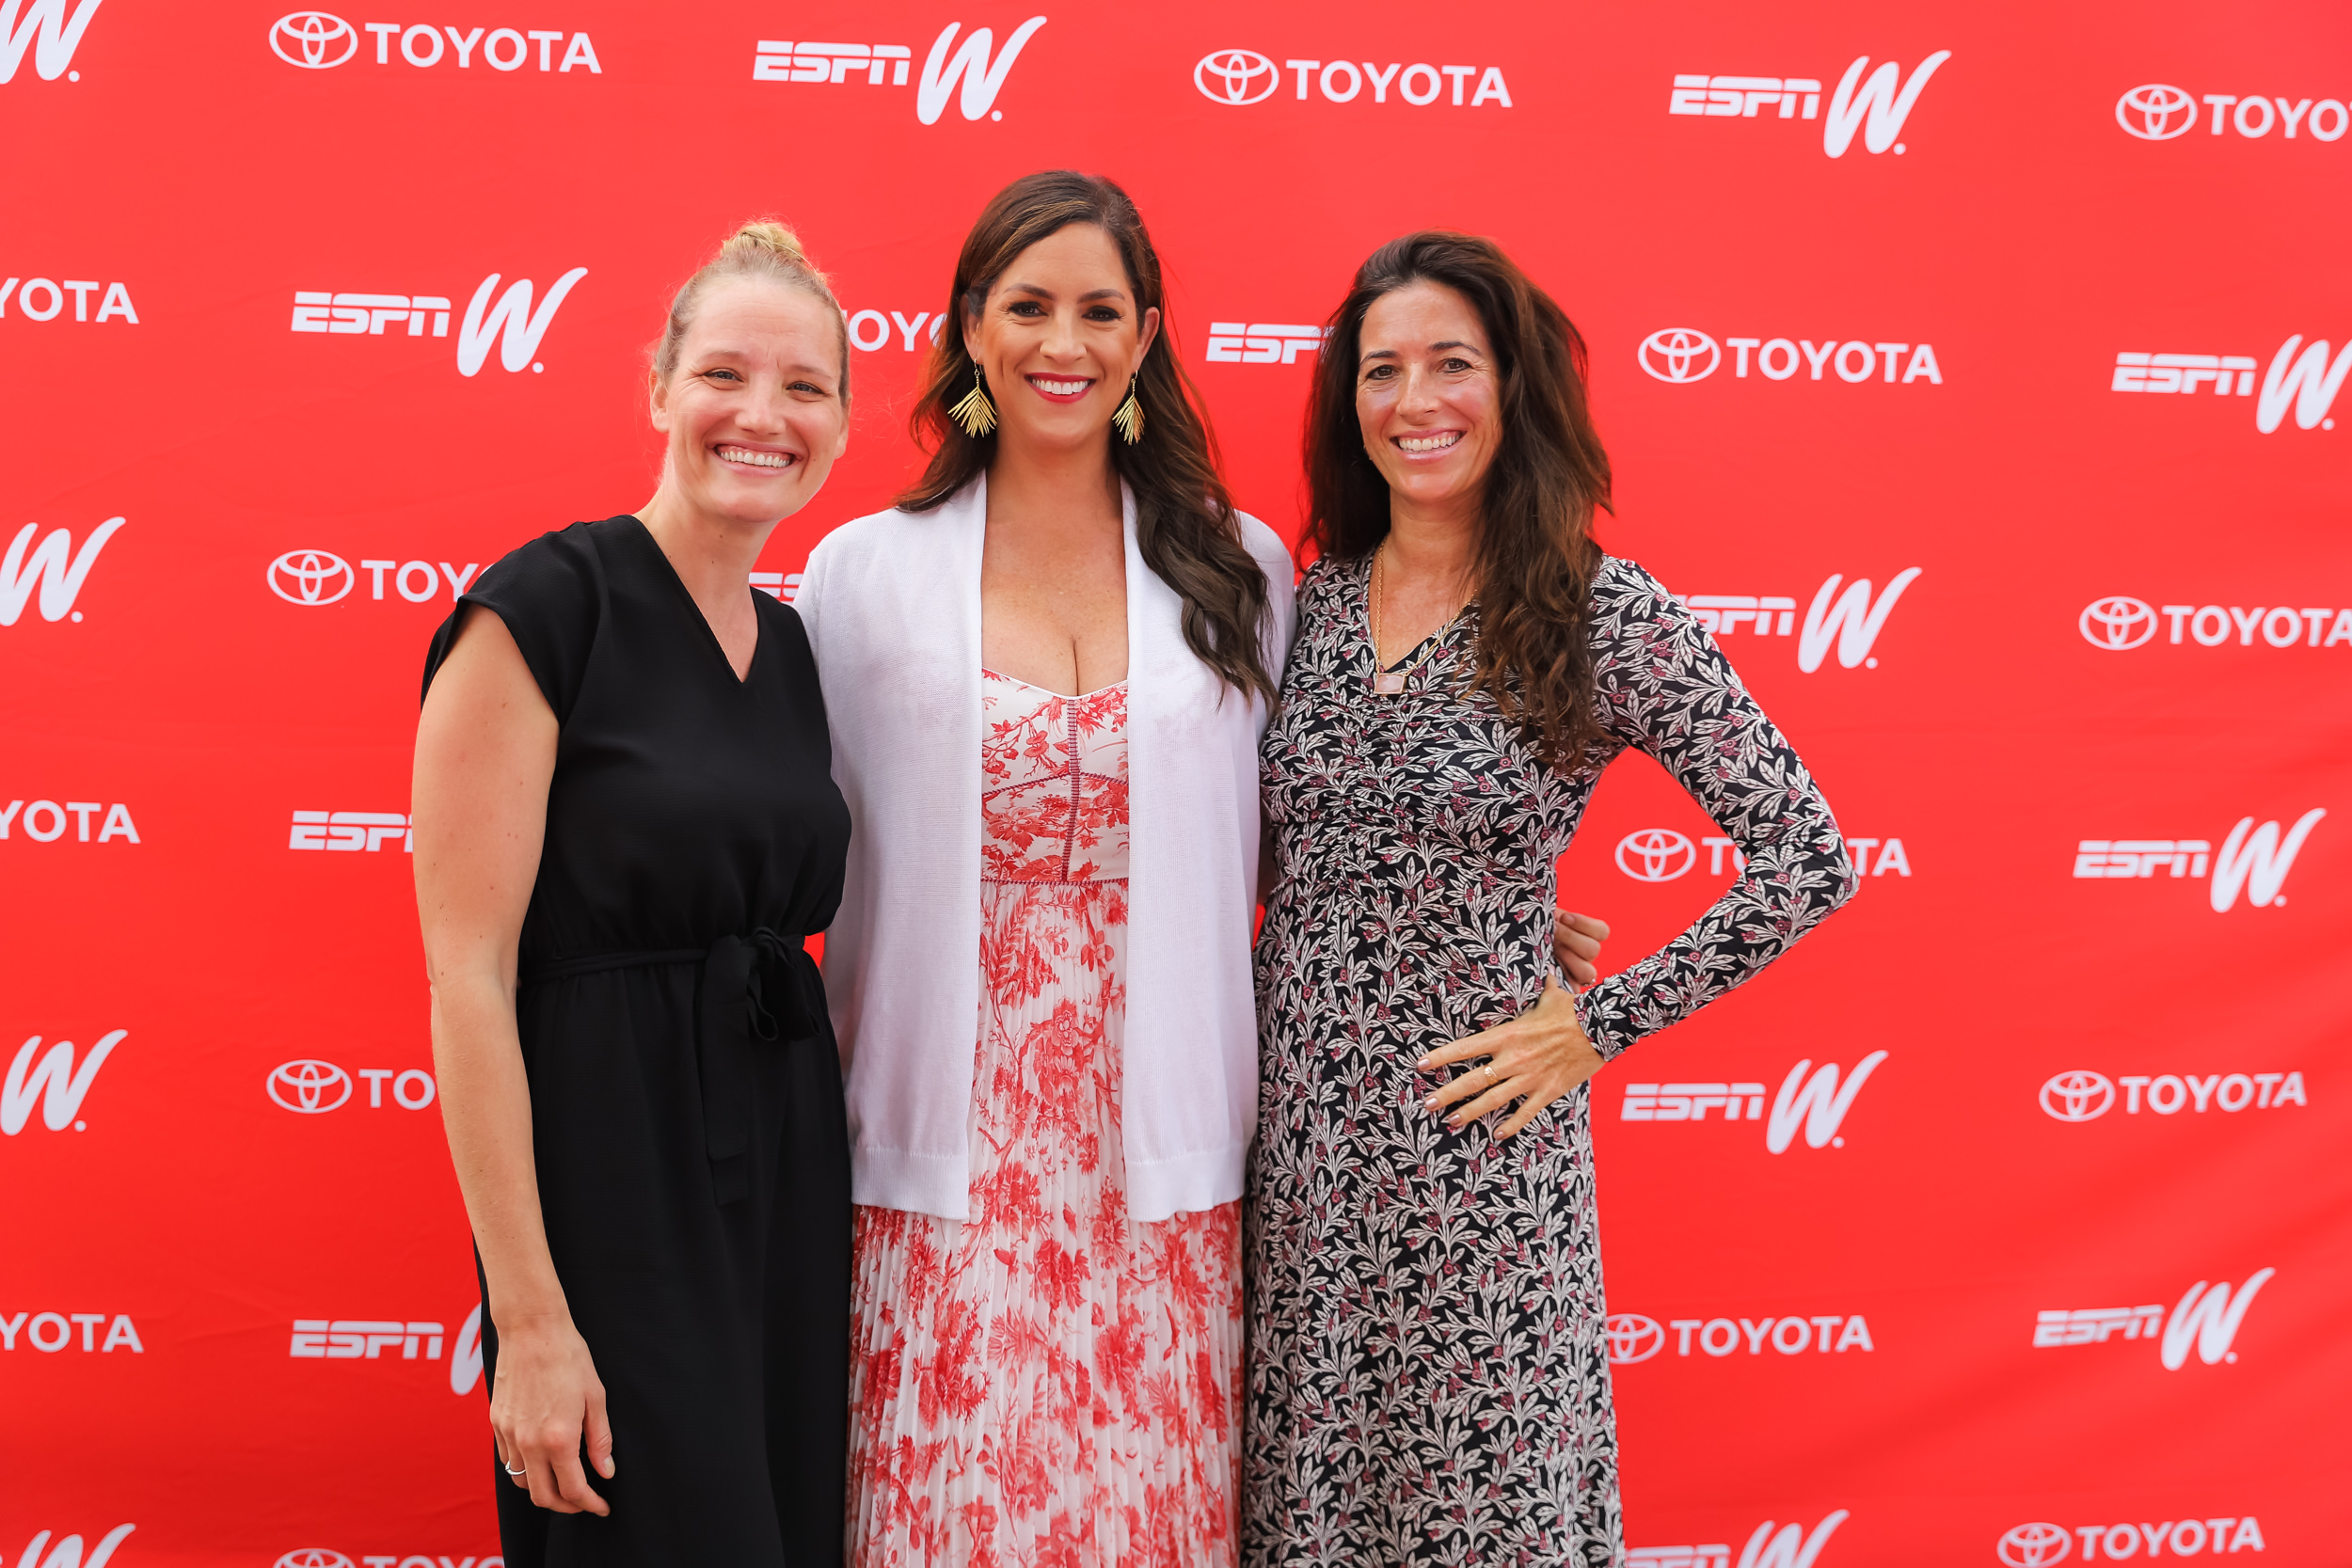 espnw_summit_2018_048